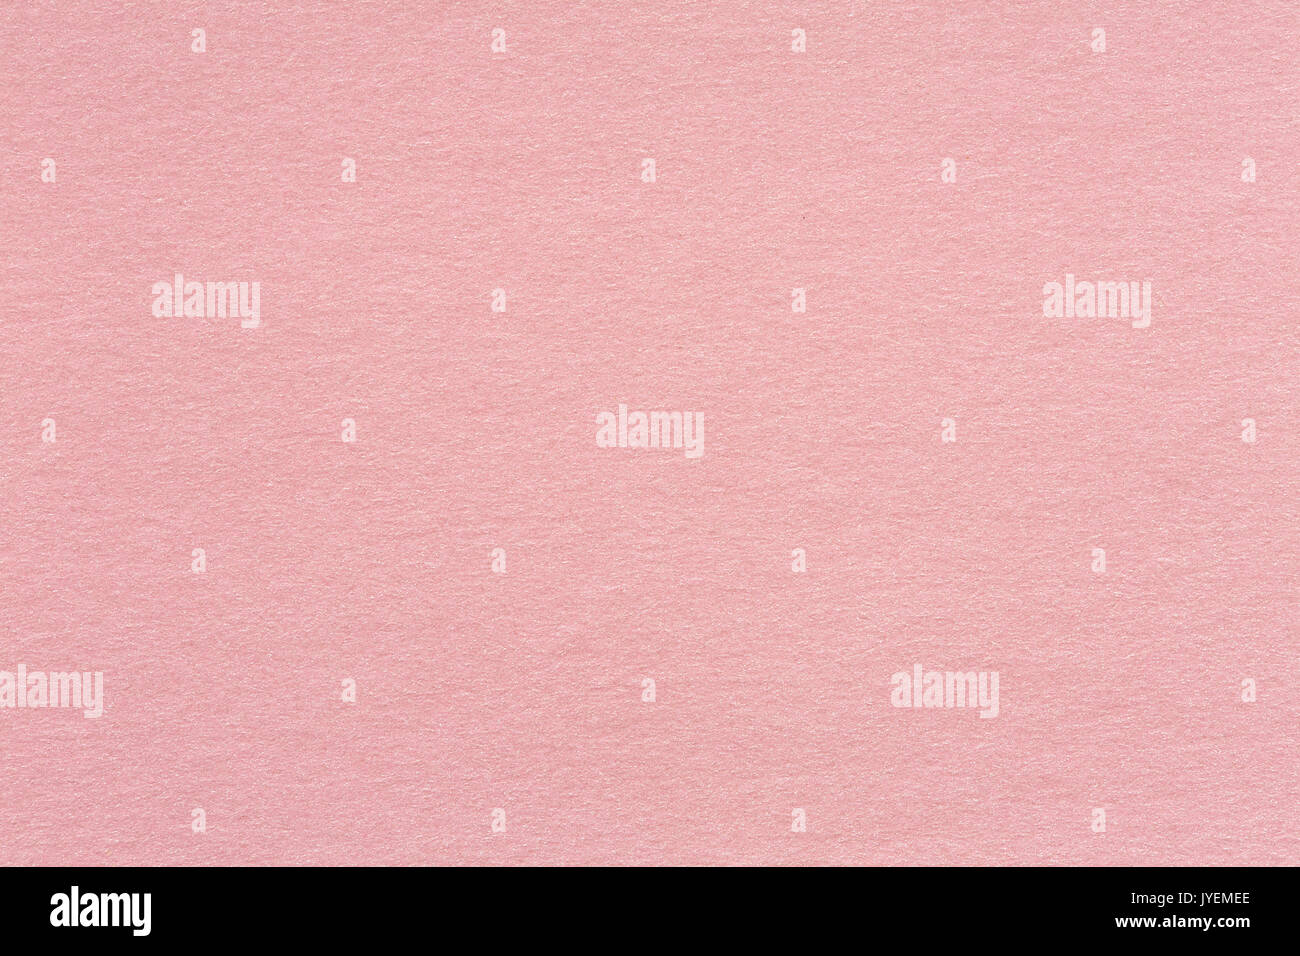 Riciclata Carta Craft Textured Background In Luce Rosa Rosa Antico